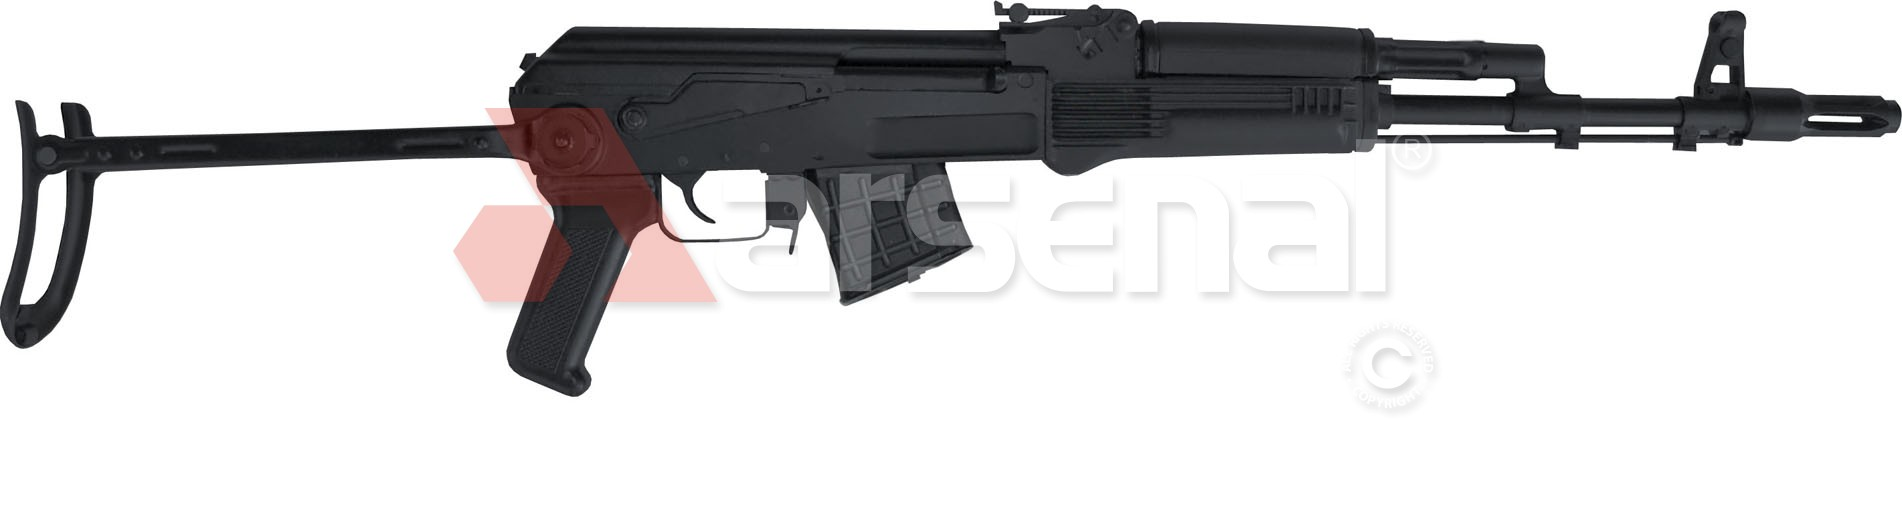 7.62x39 mm SAR-M1 and SAR-M1F - Arsenal JSCo. - Bulgarian manufacturer of weapons and ammunition ...